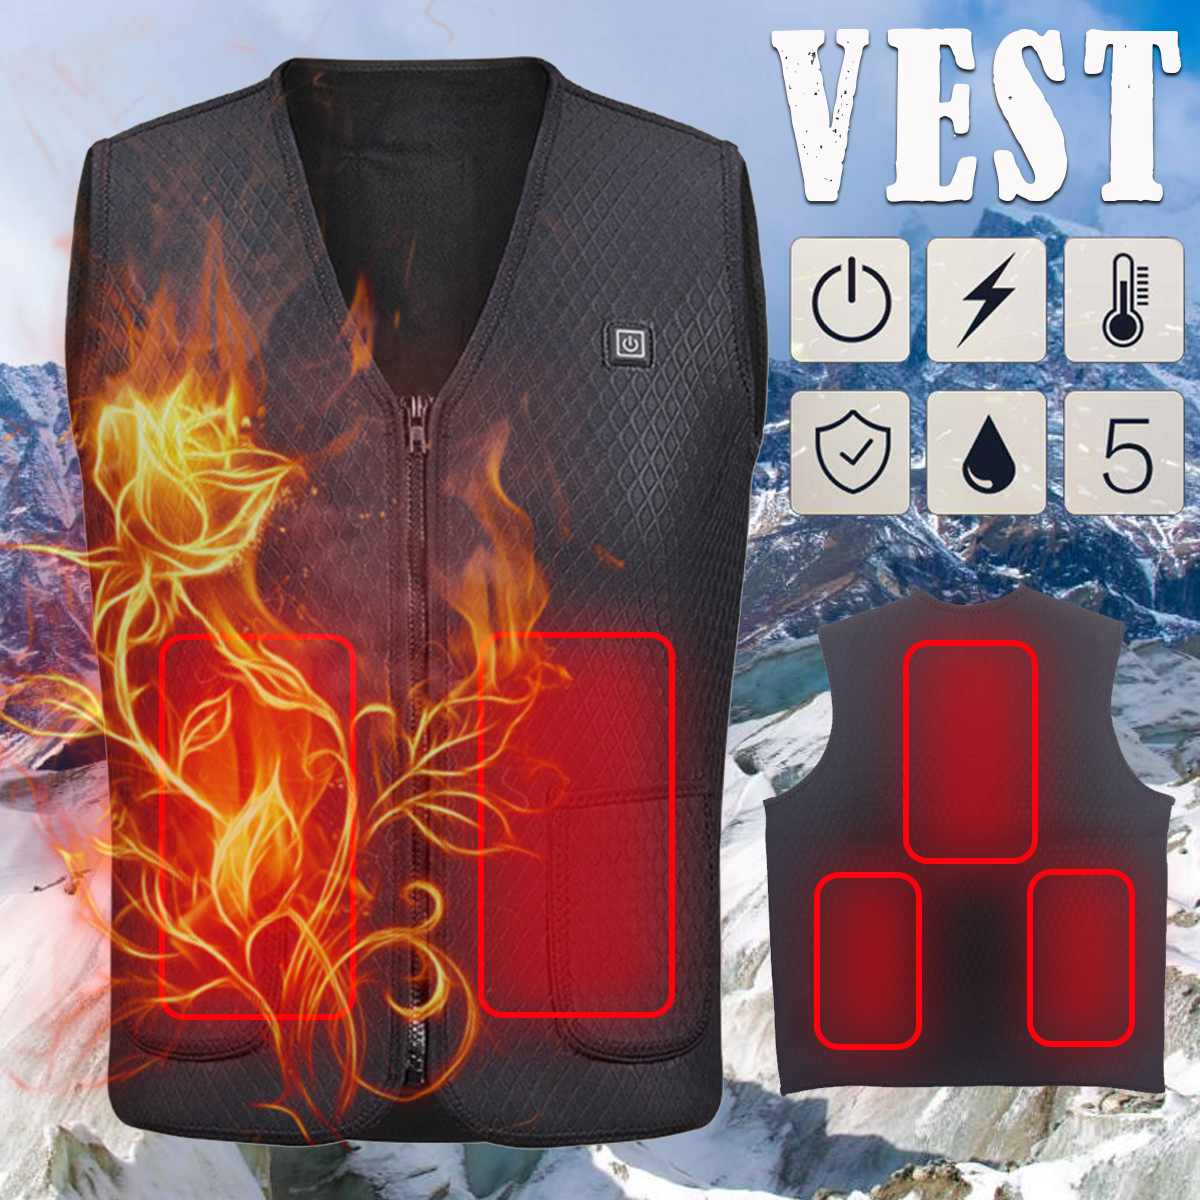 NEW Women Outdoor USB Infrared Heating Vest Jacket Winter Flexible Electric Thermal Clothing Waistcoat For Sports Hiking